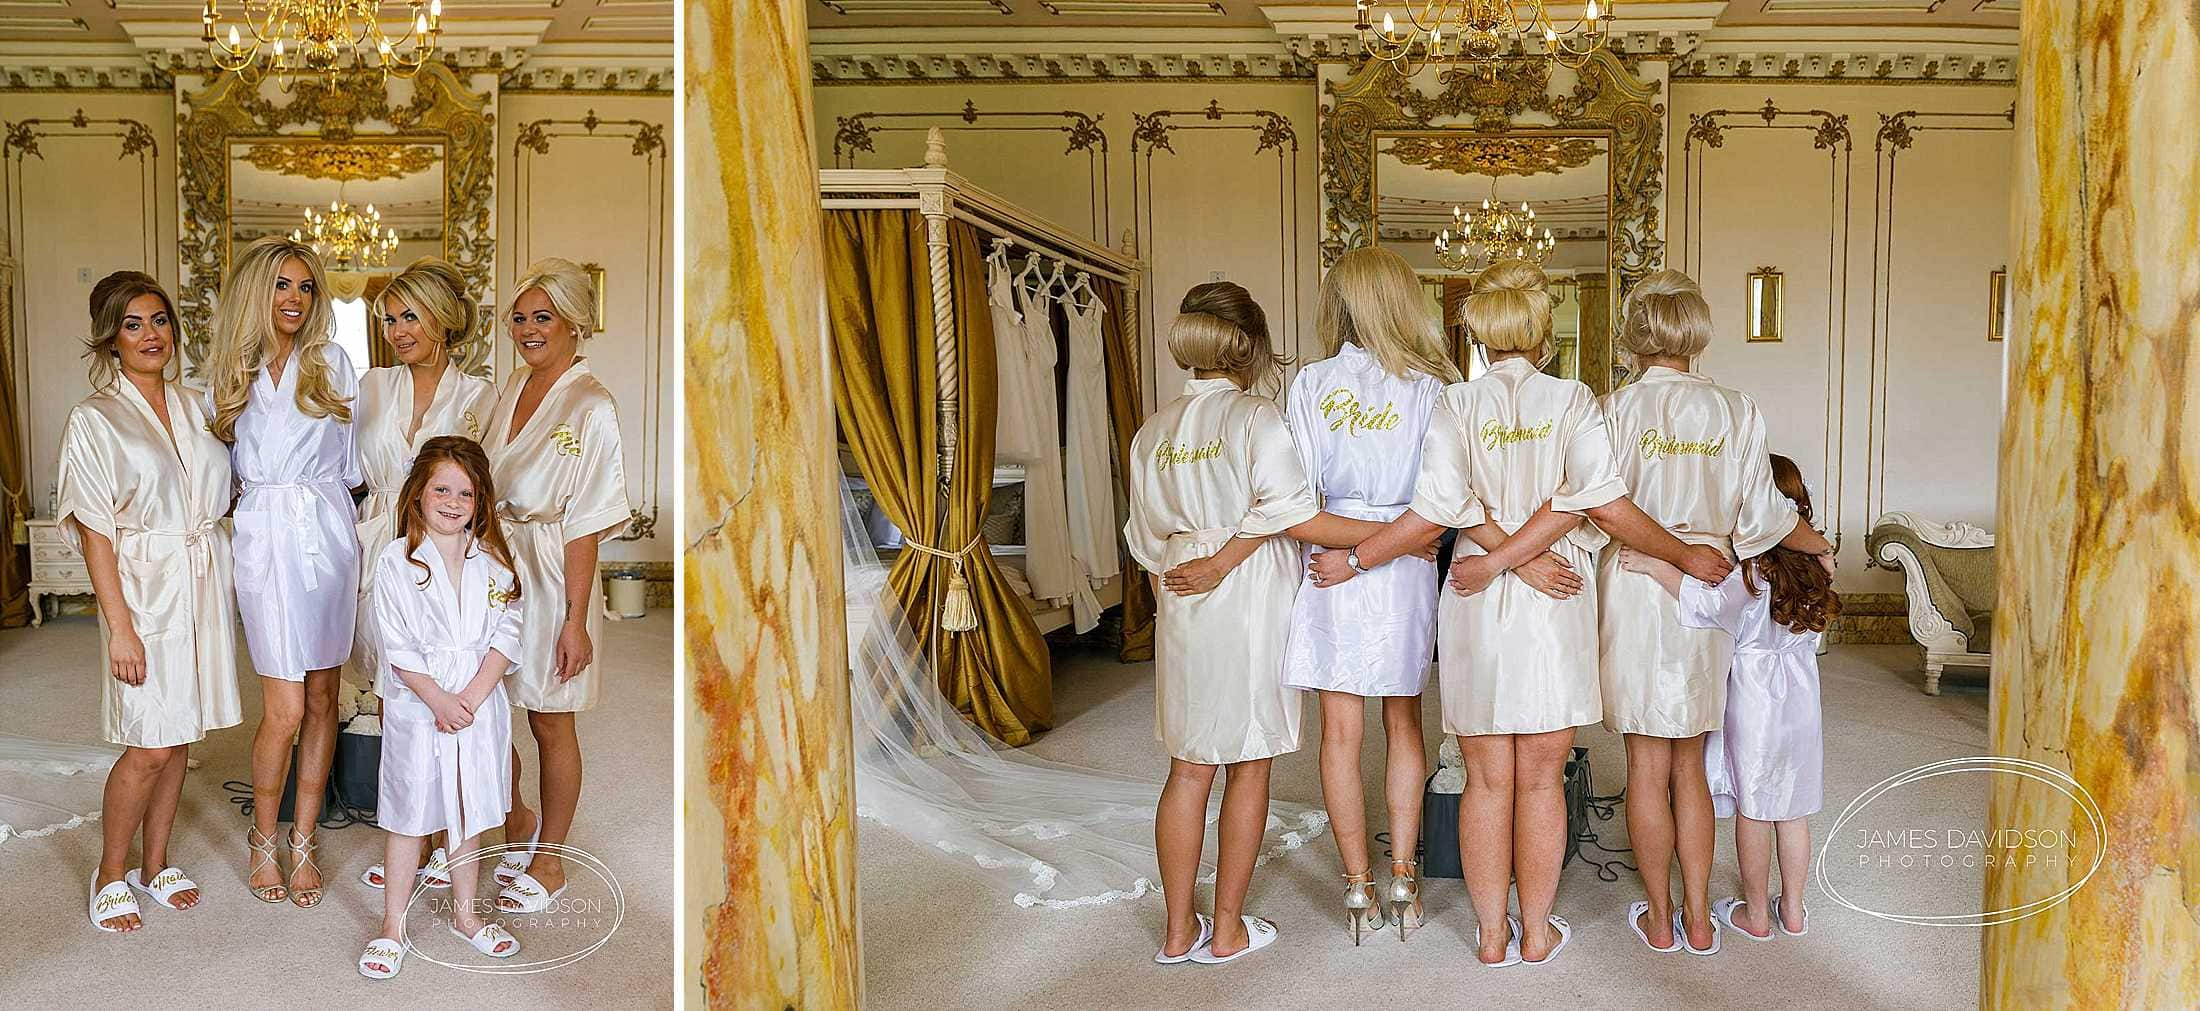 gosfield-hall-wedding-photography-025